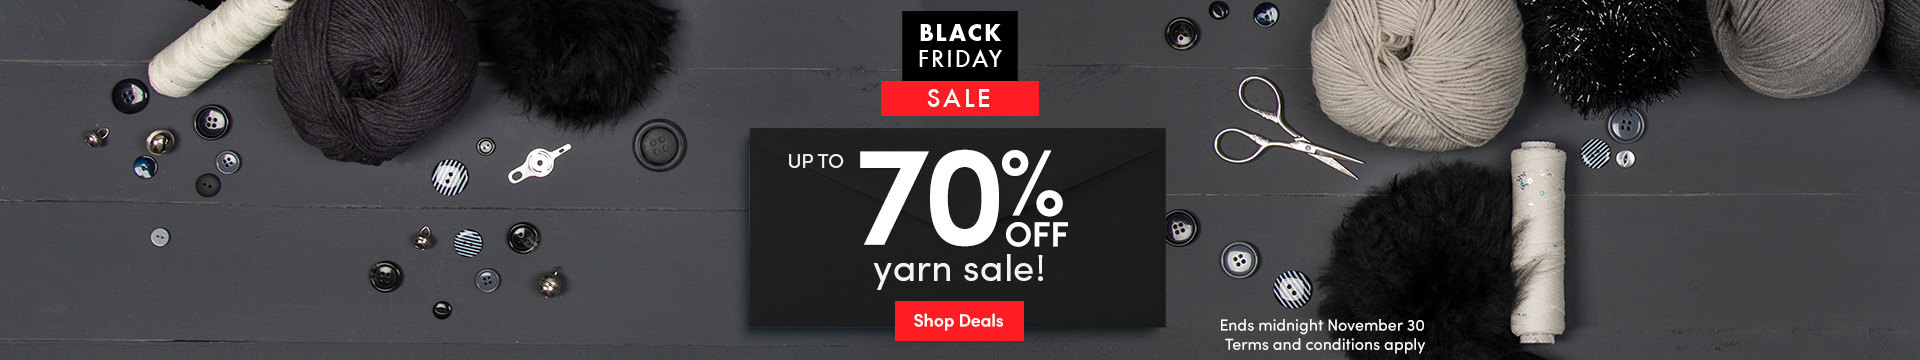 LK Marketing - Black Friday 70% off